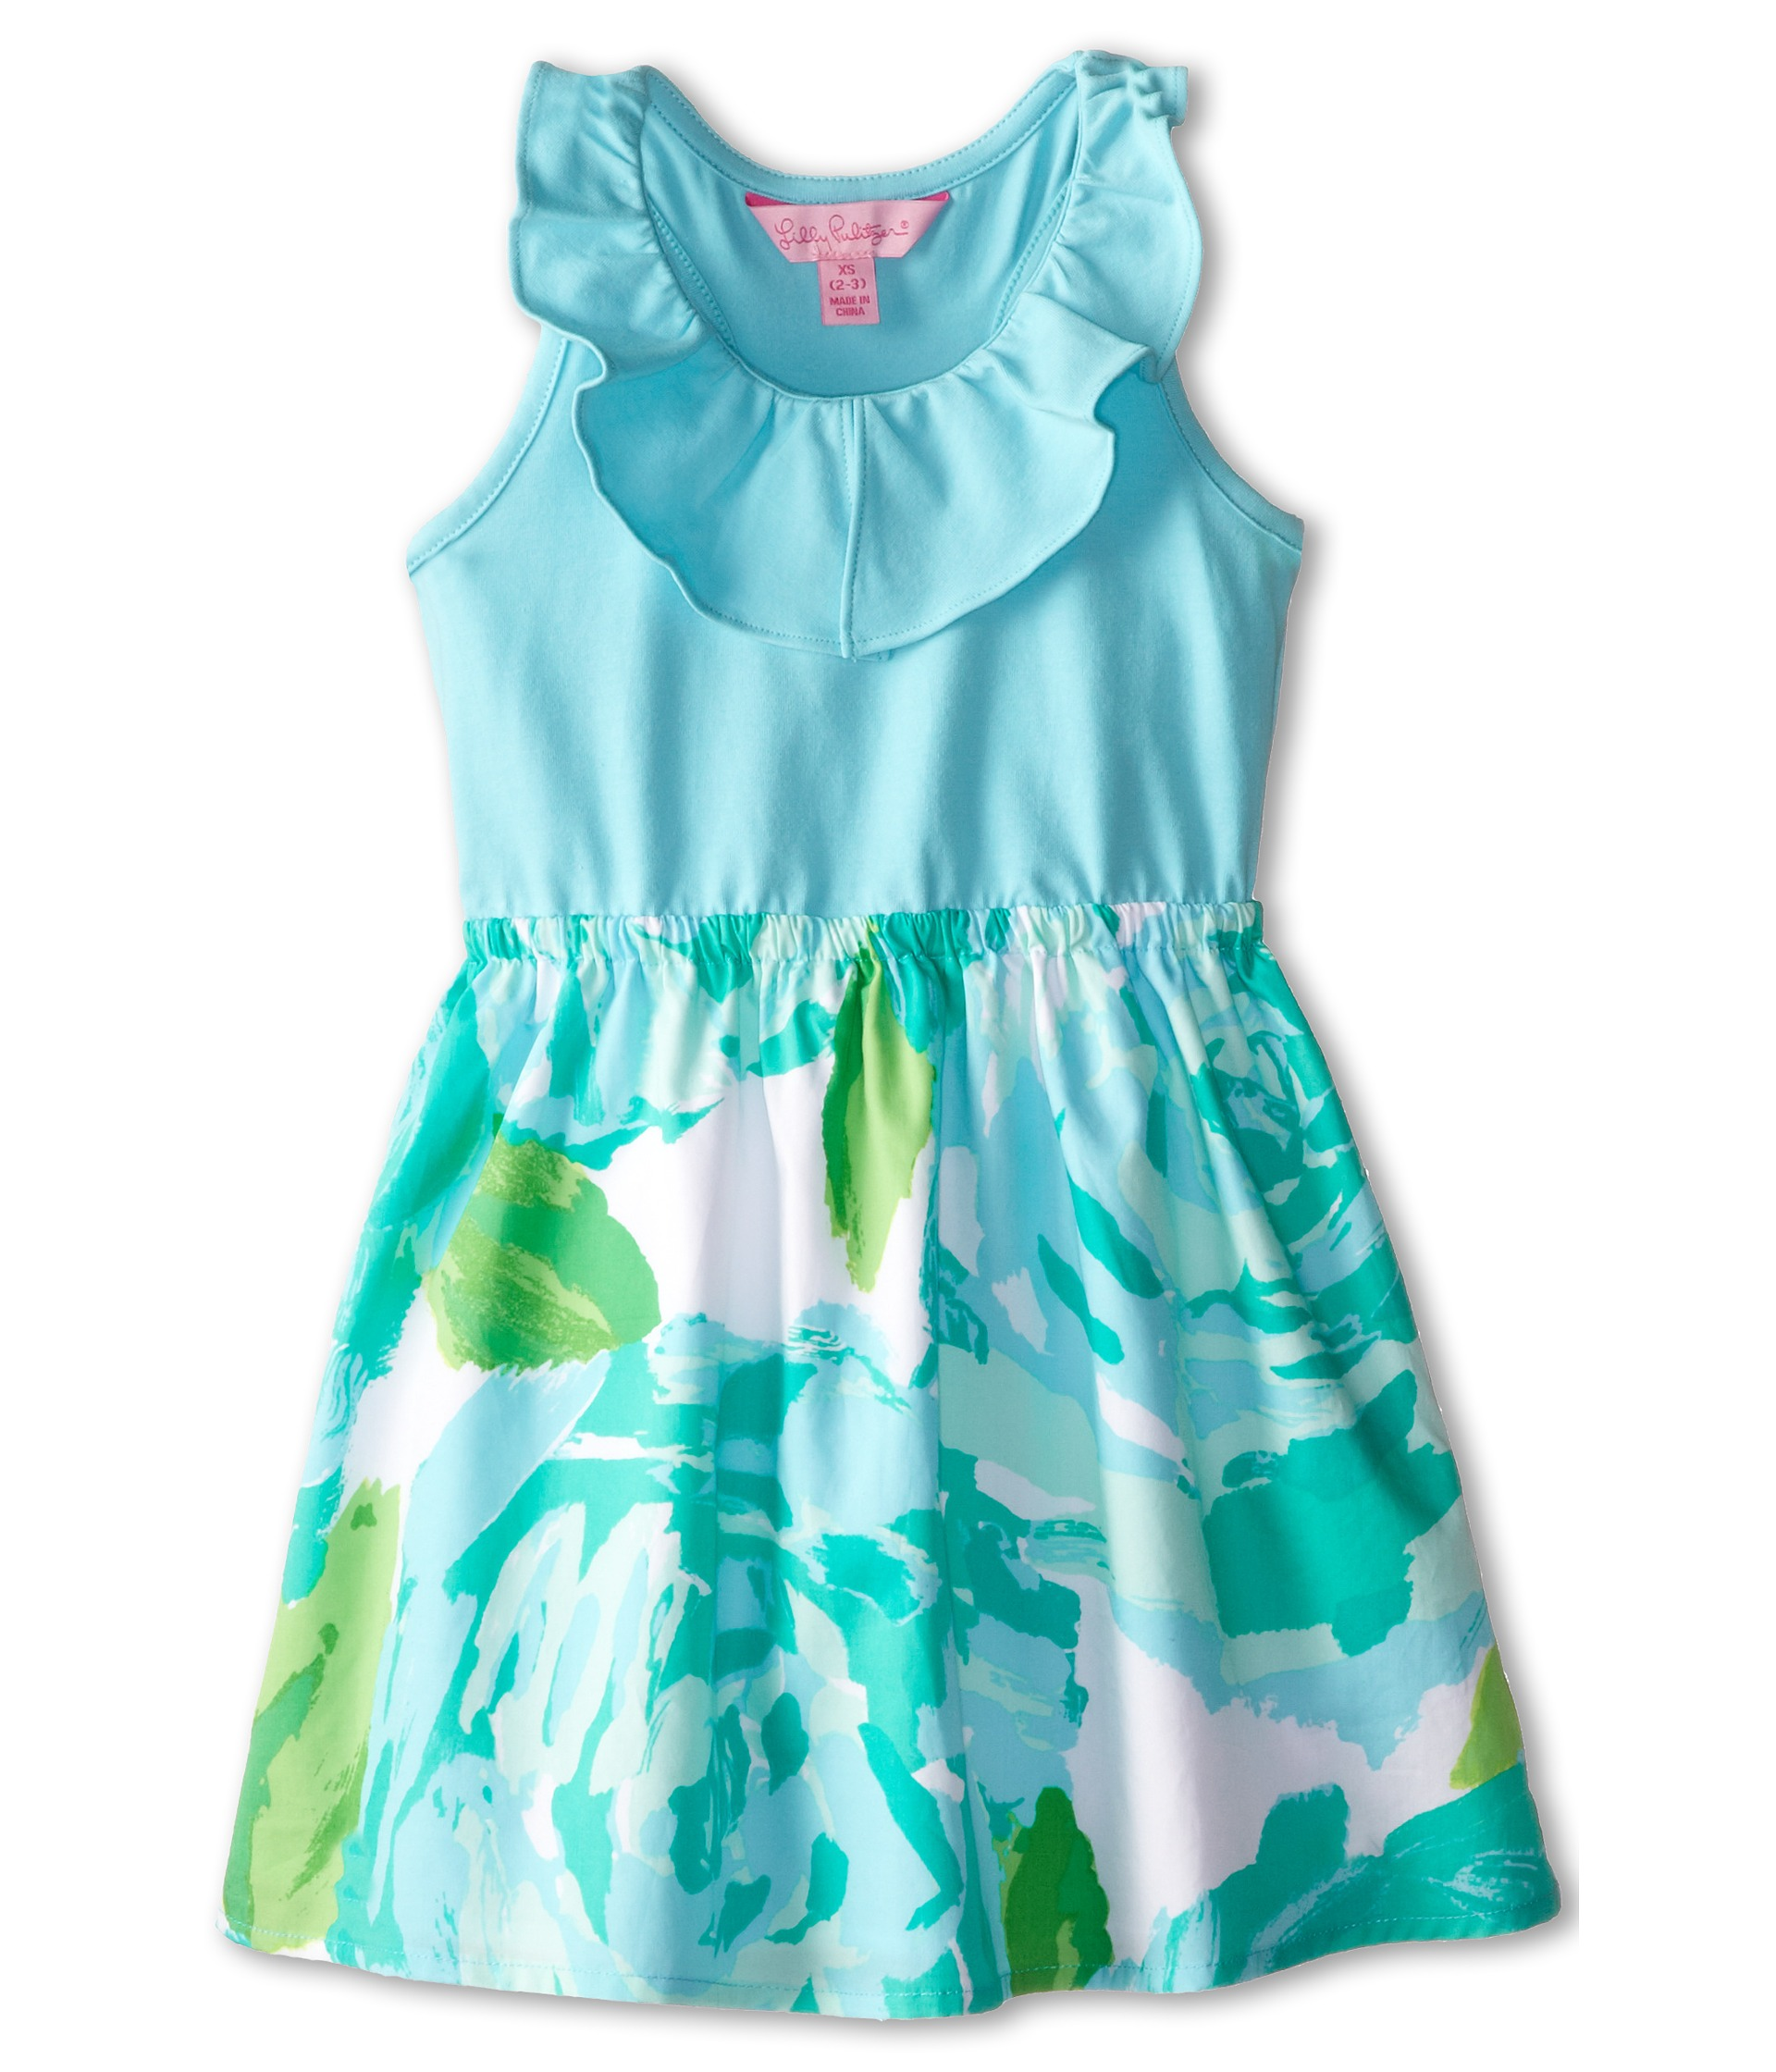 Lilly Pulitzer Girls Dresses On Sale Lilly Pulitzer Kids Little